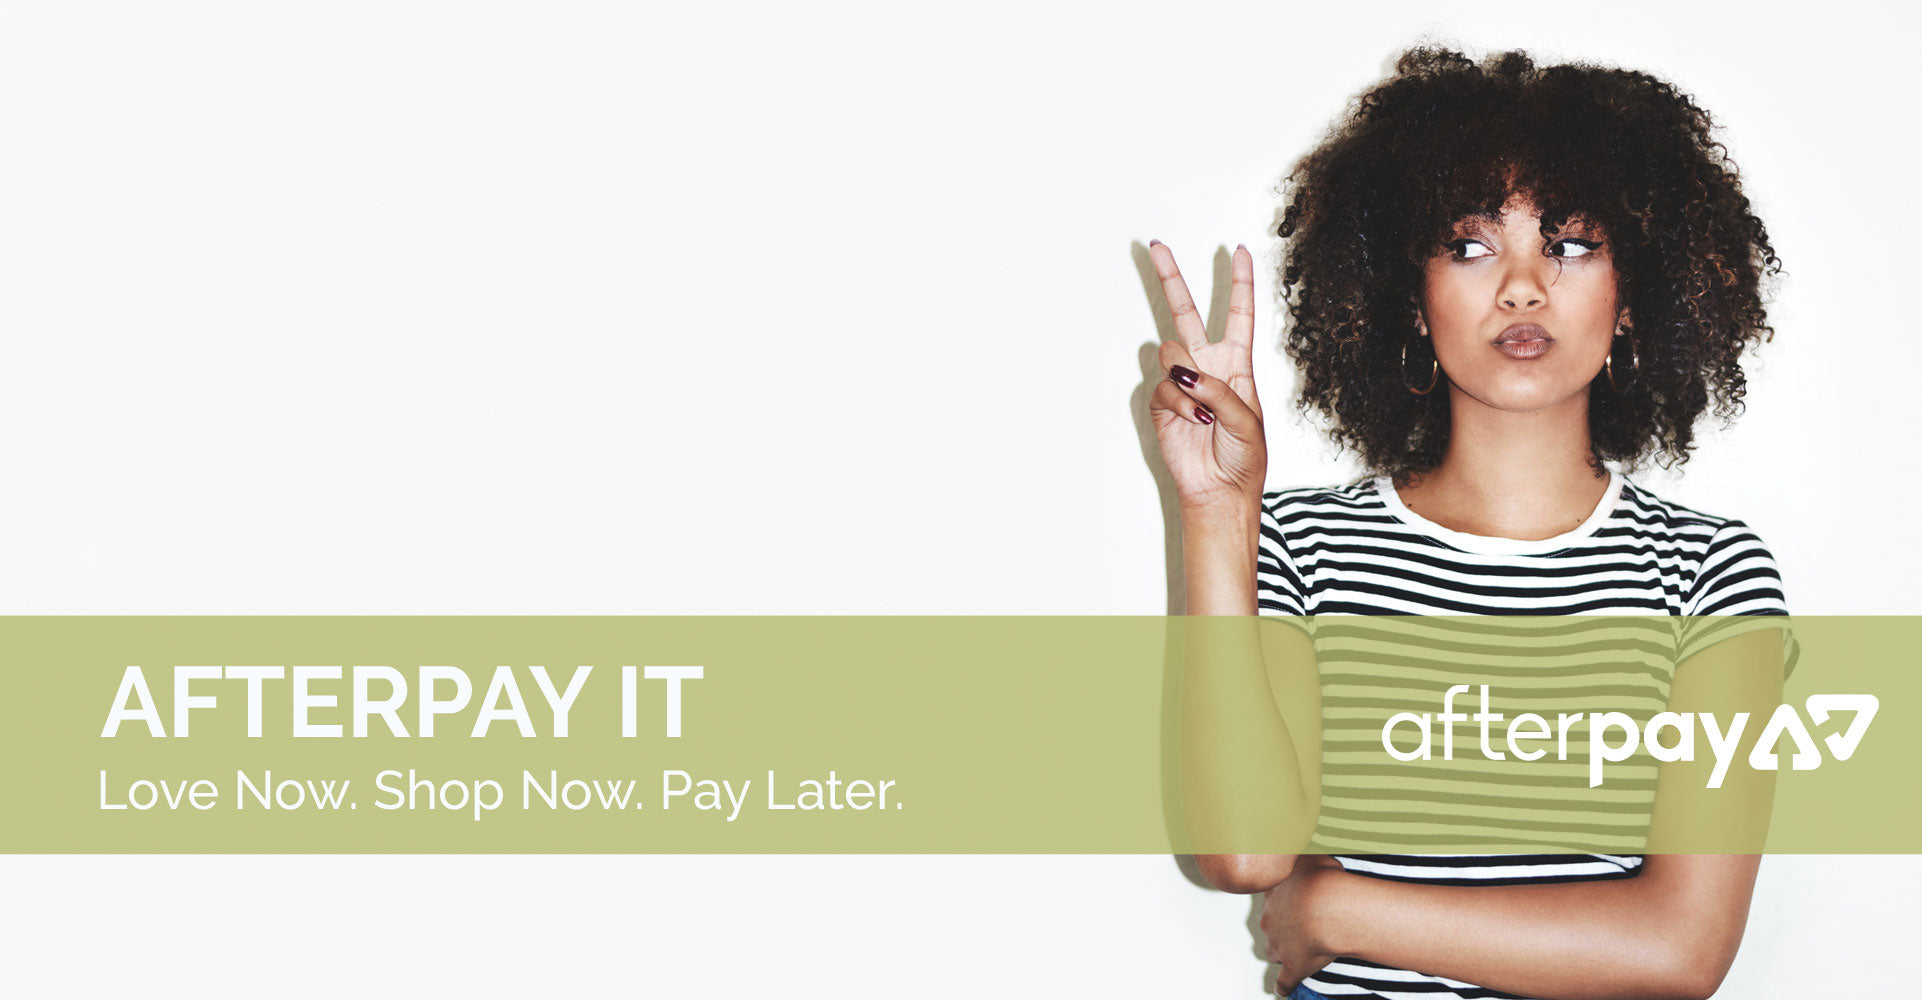 Afterpay it. Love Now. Shop Now. Pay Later.